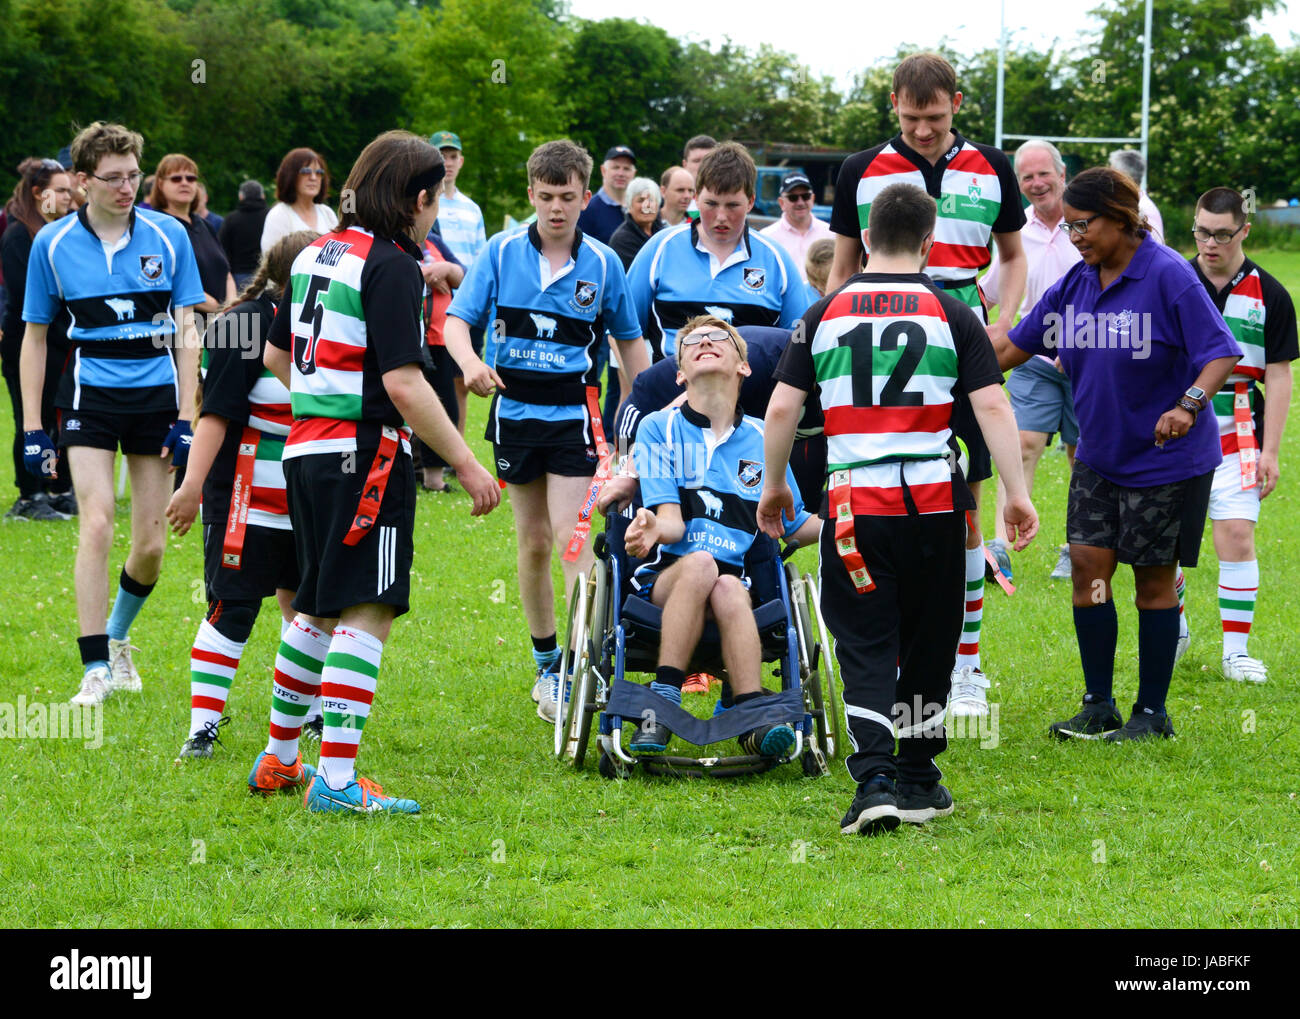 Wooden Spoon International SEN rugby tournament at Witney RFC, Oxfordshire, UK - Stock Image